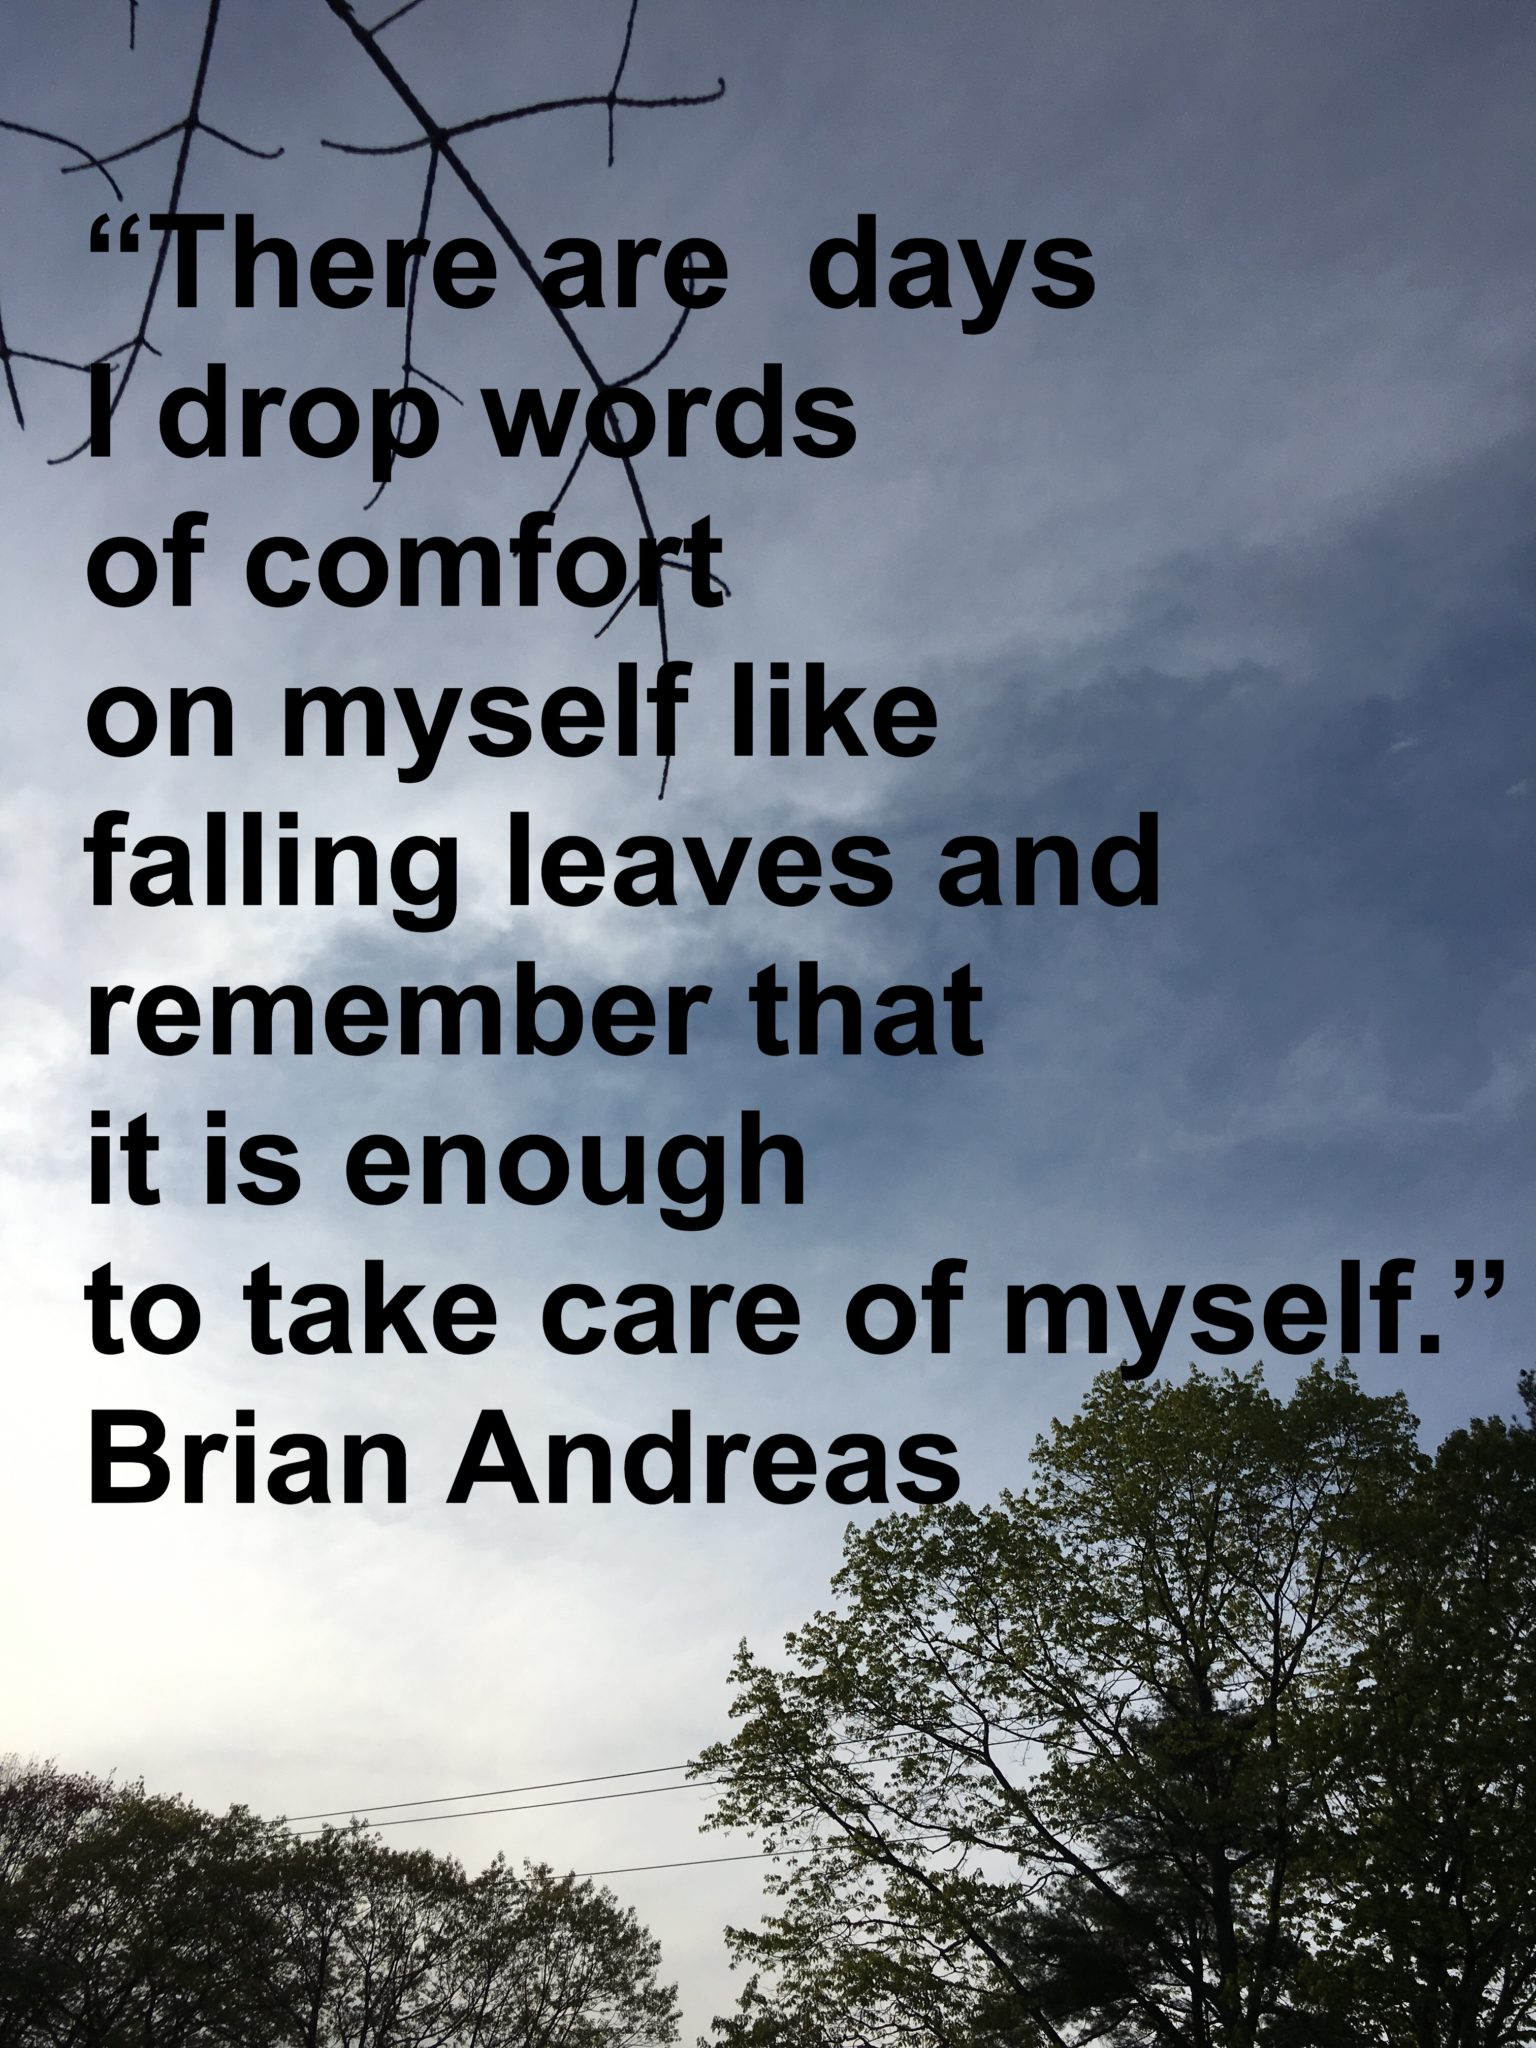 """There are days when I drop words of comfort on myself like falling leaves and remember that it is enough to take care of myself."" Brian Andreas"